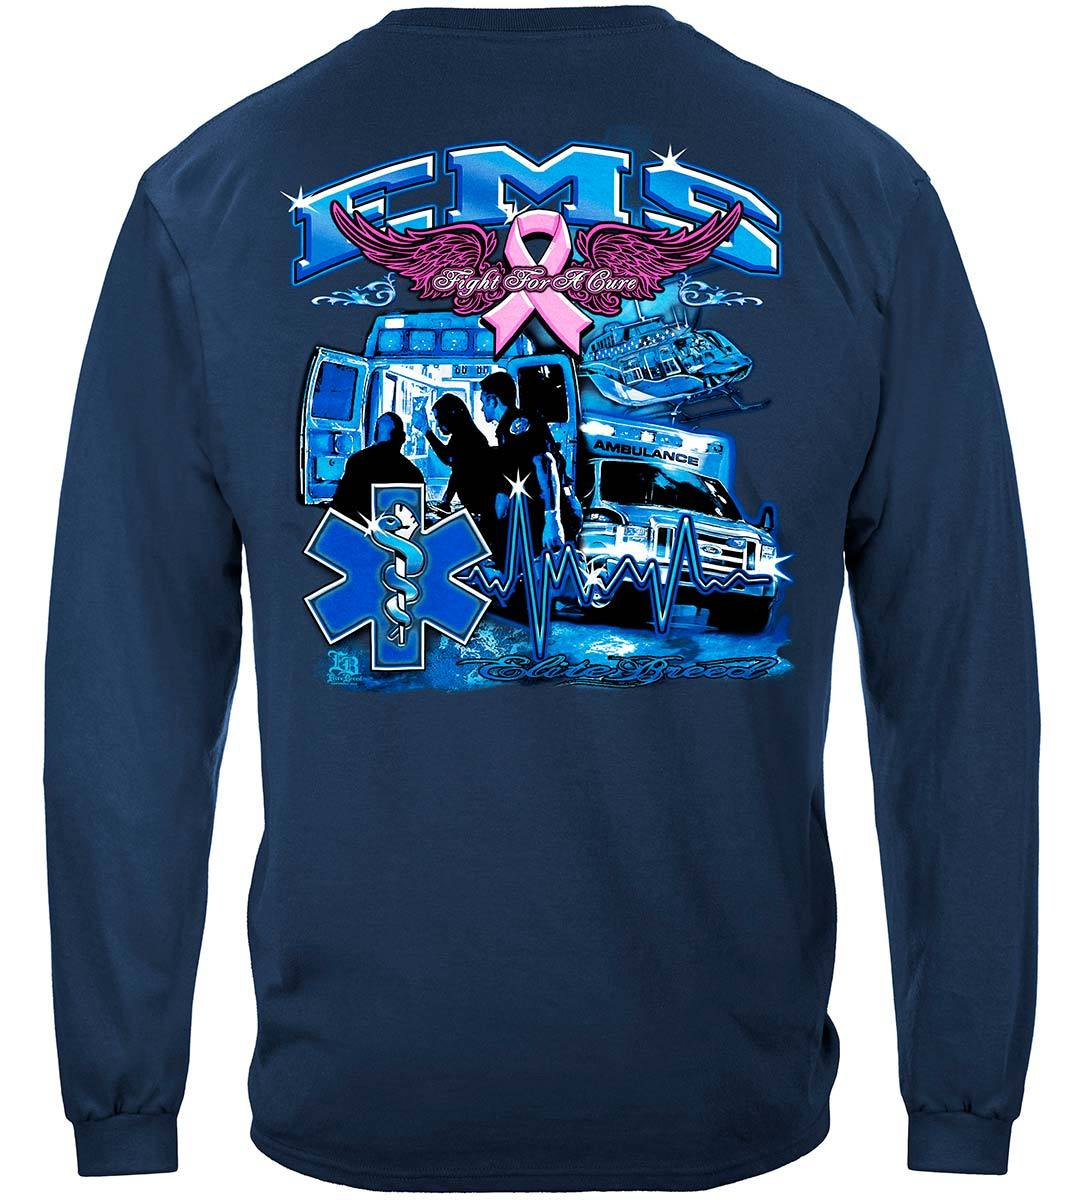 Elite Breed EMS Fight Cancer Premium Long Sleeves